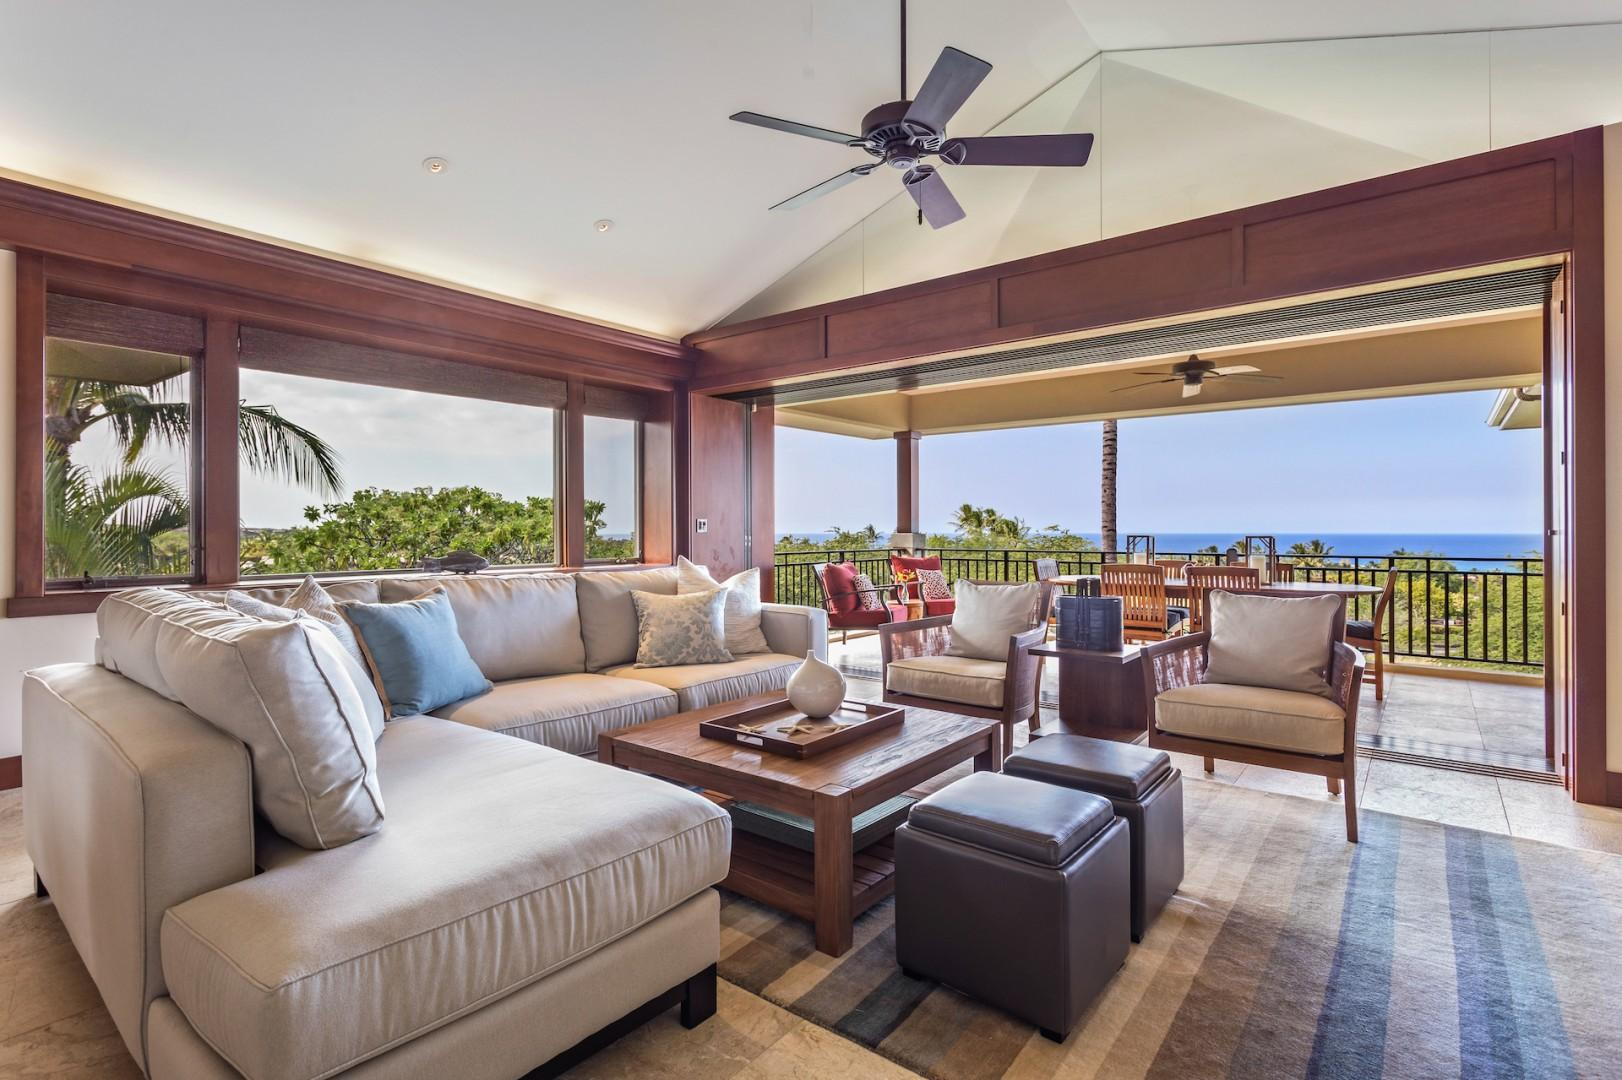 Abundant natural light and ocean views in the living area, with sliding glass pocket doors out to the lanai.